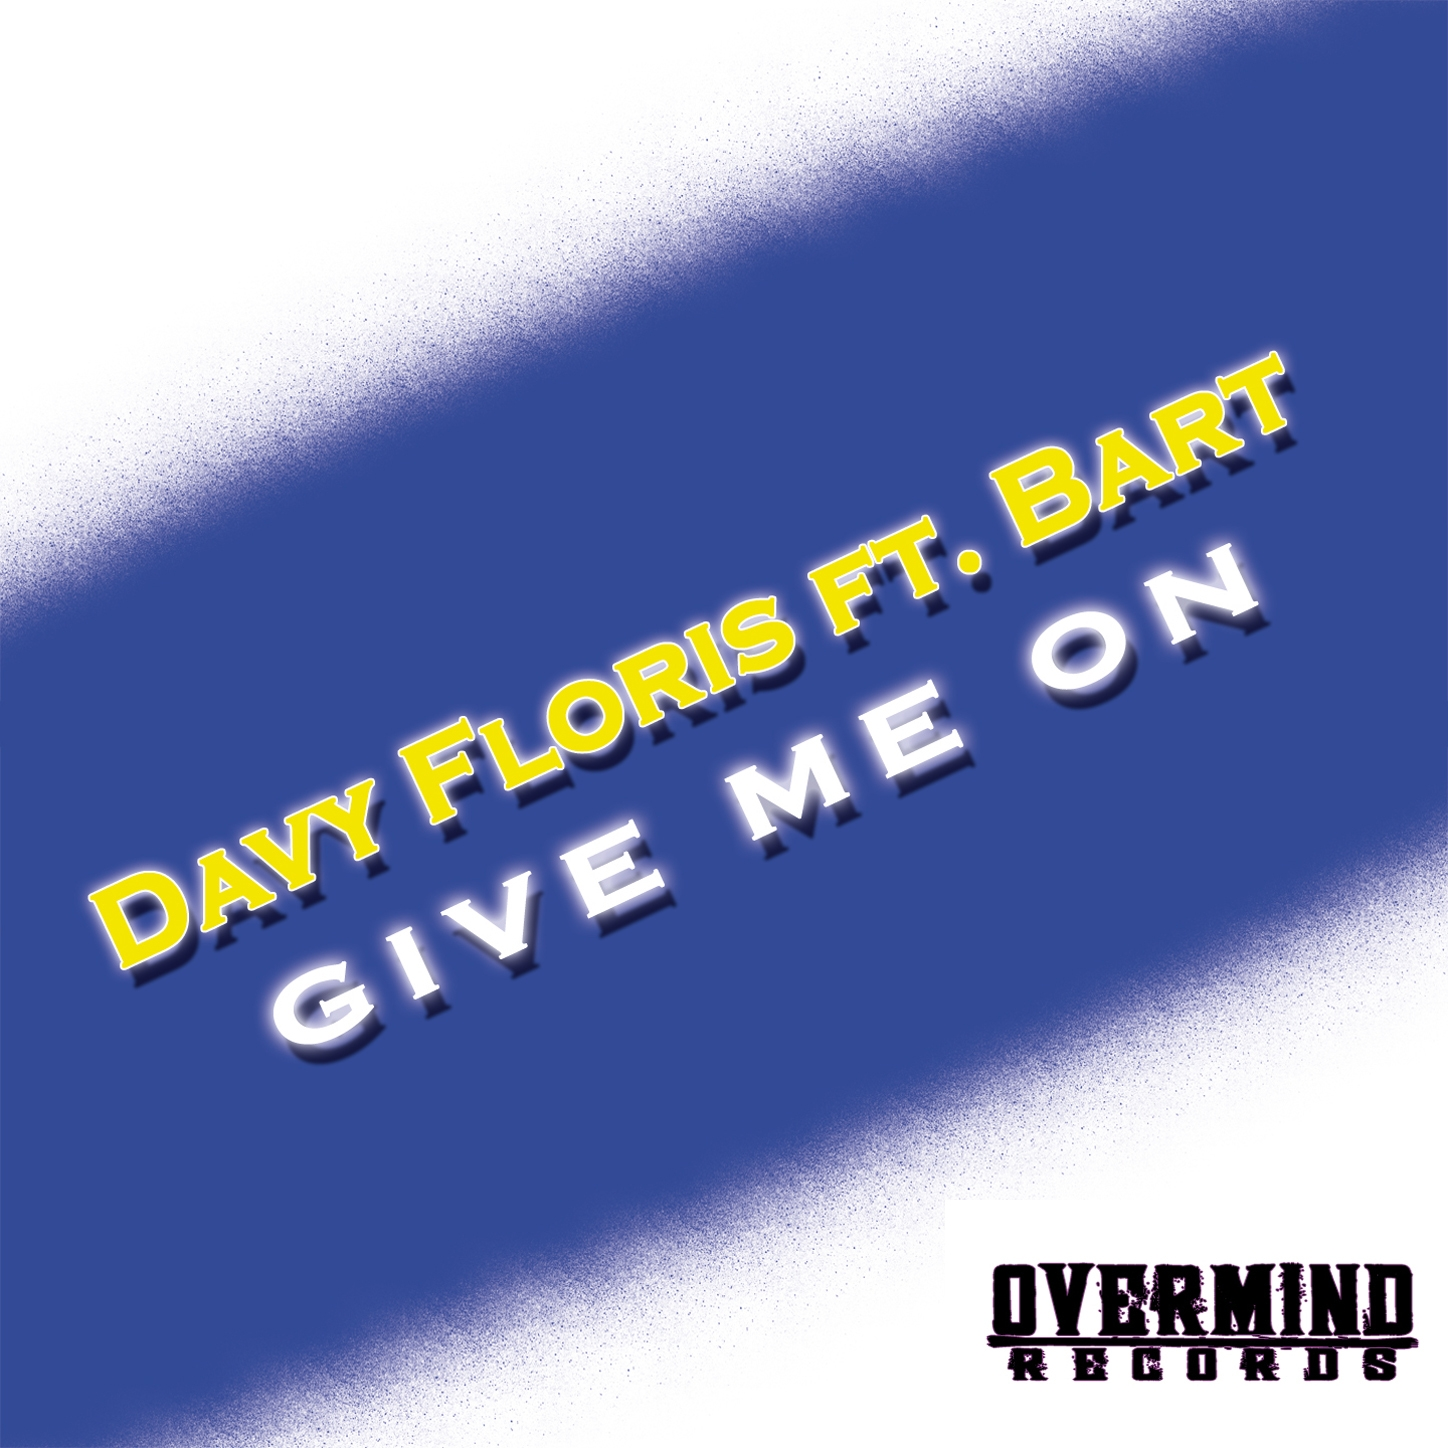 Davy Floris feat B.art - Give Me  On (underground extended mix)